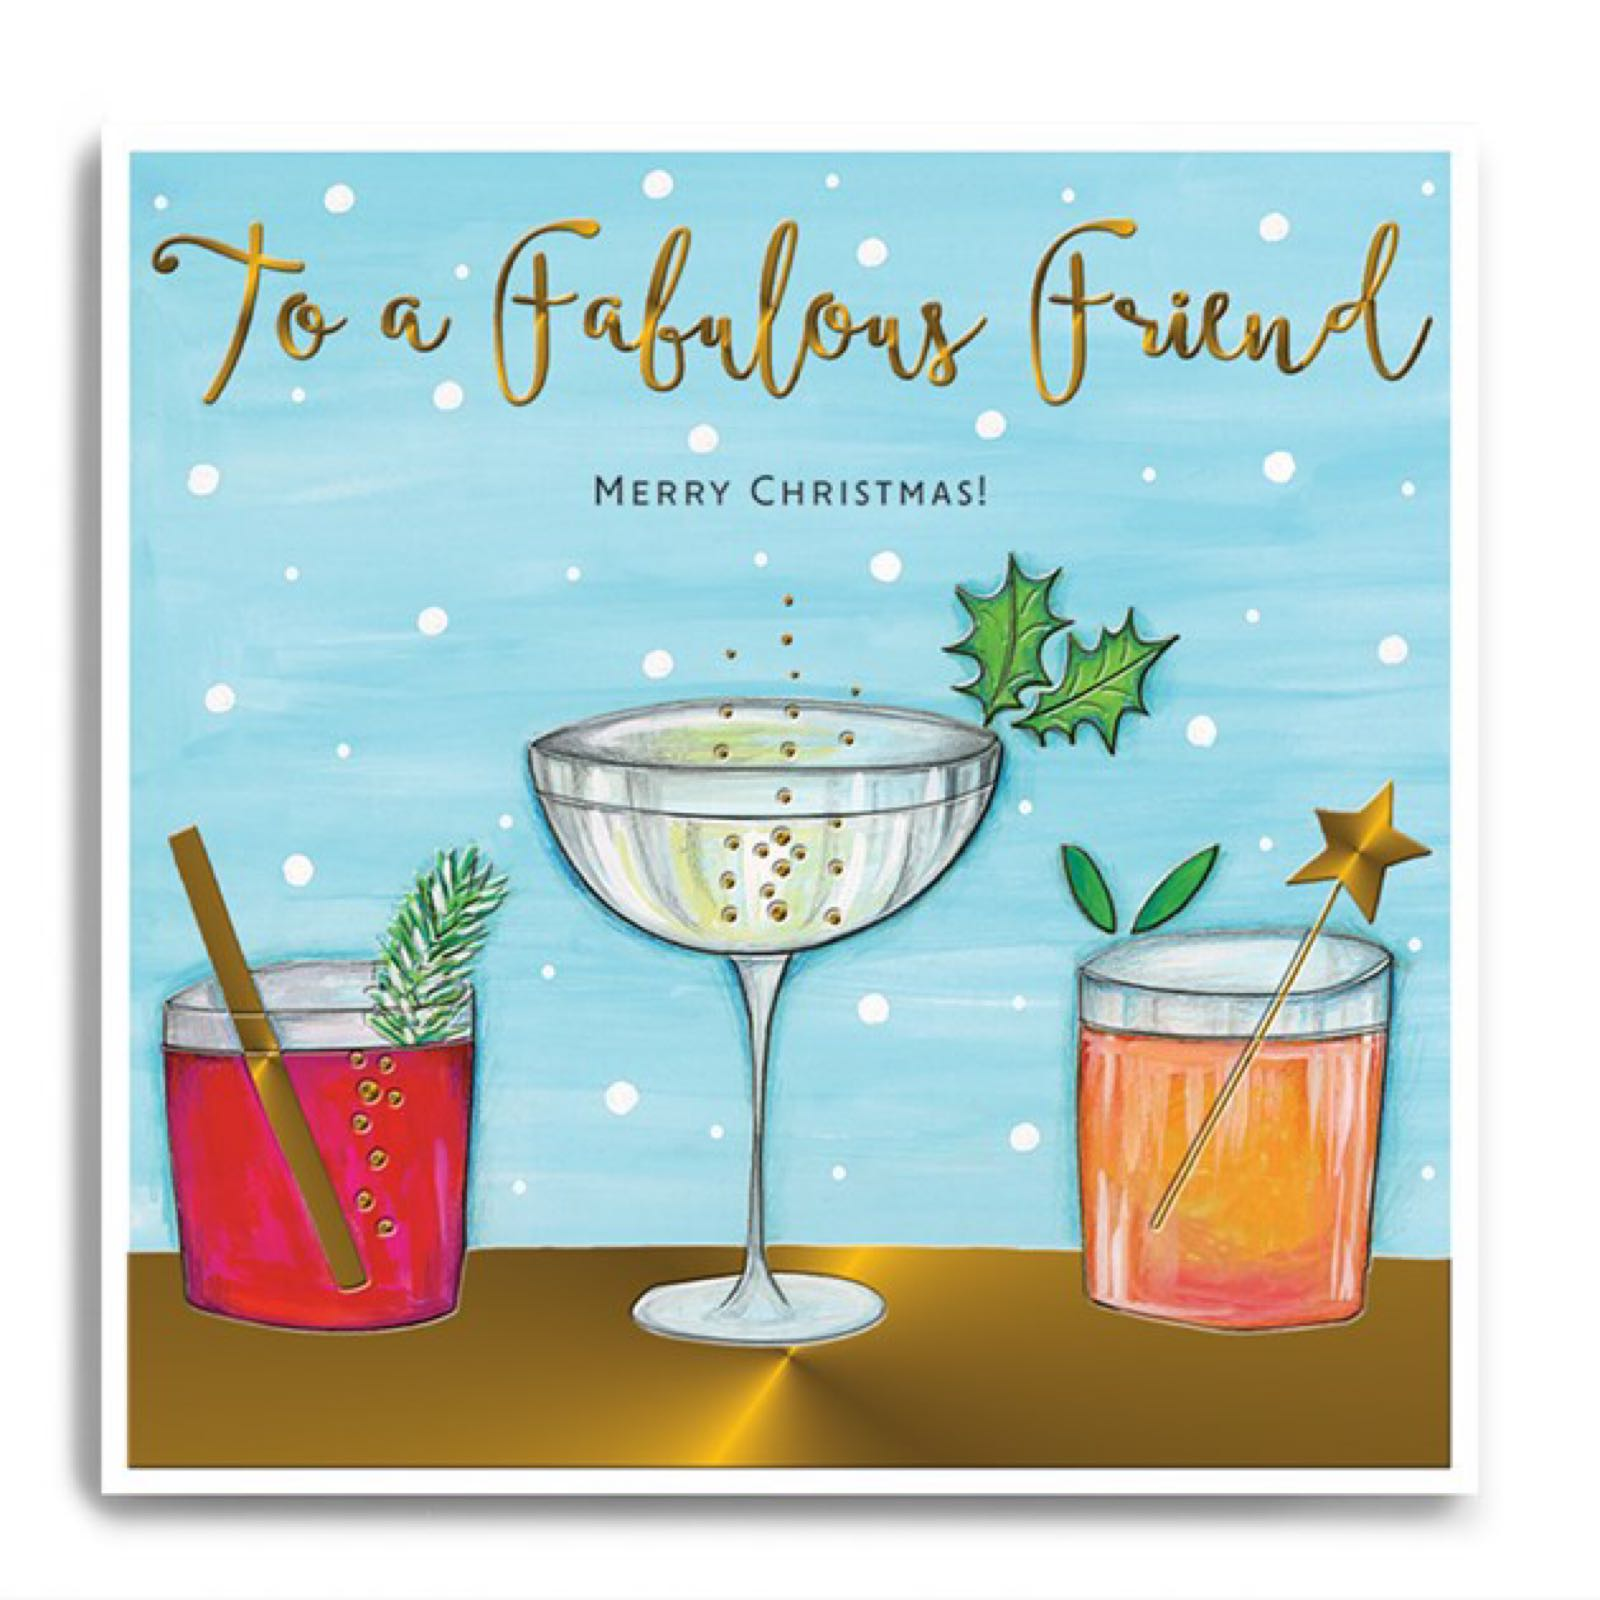 Janie wilson fabulous friend Christmas card